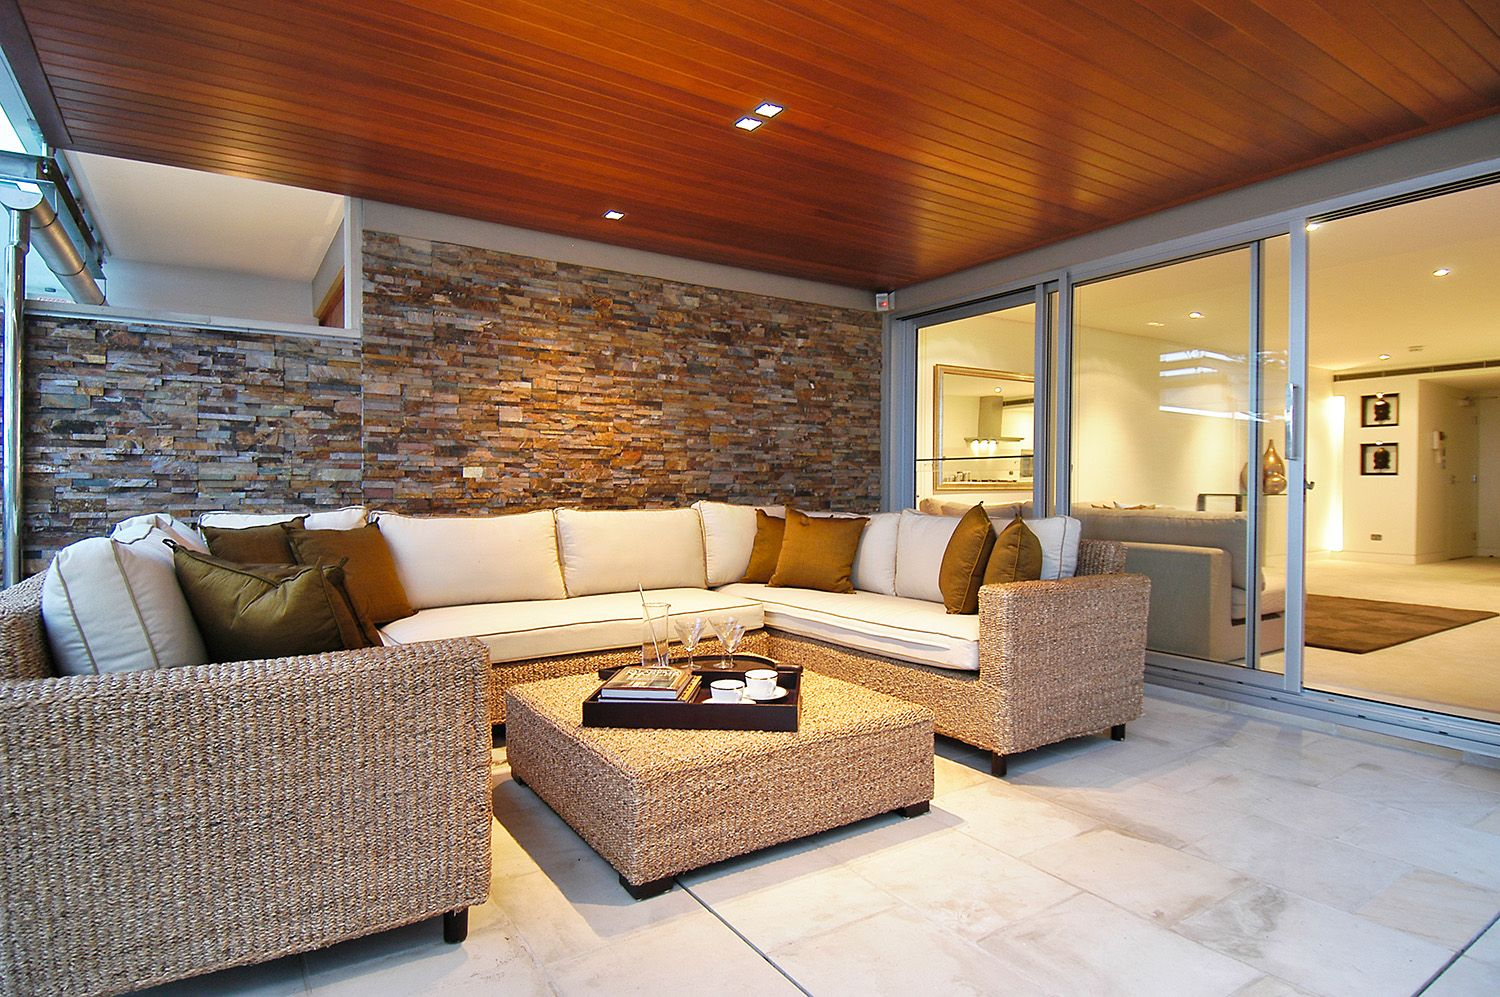 AMBER outdoor CLADDING | Modern rustic living room ... on Amber Outdoor Living id=55726